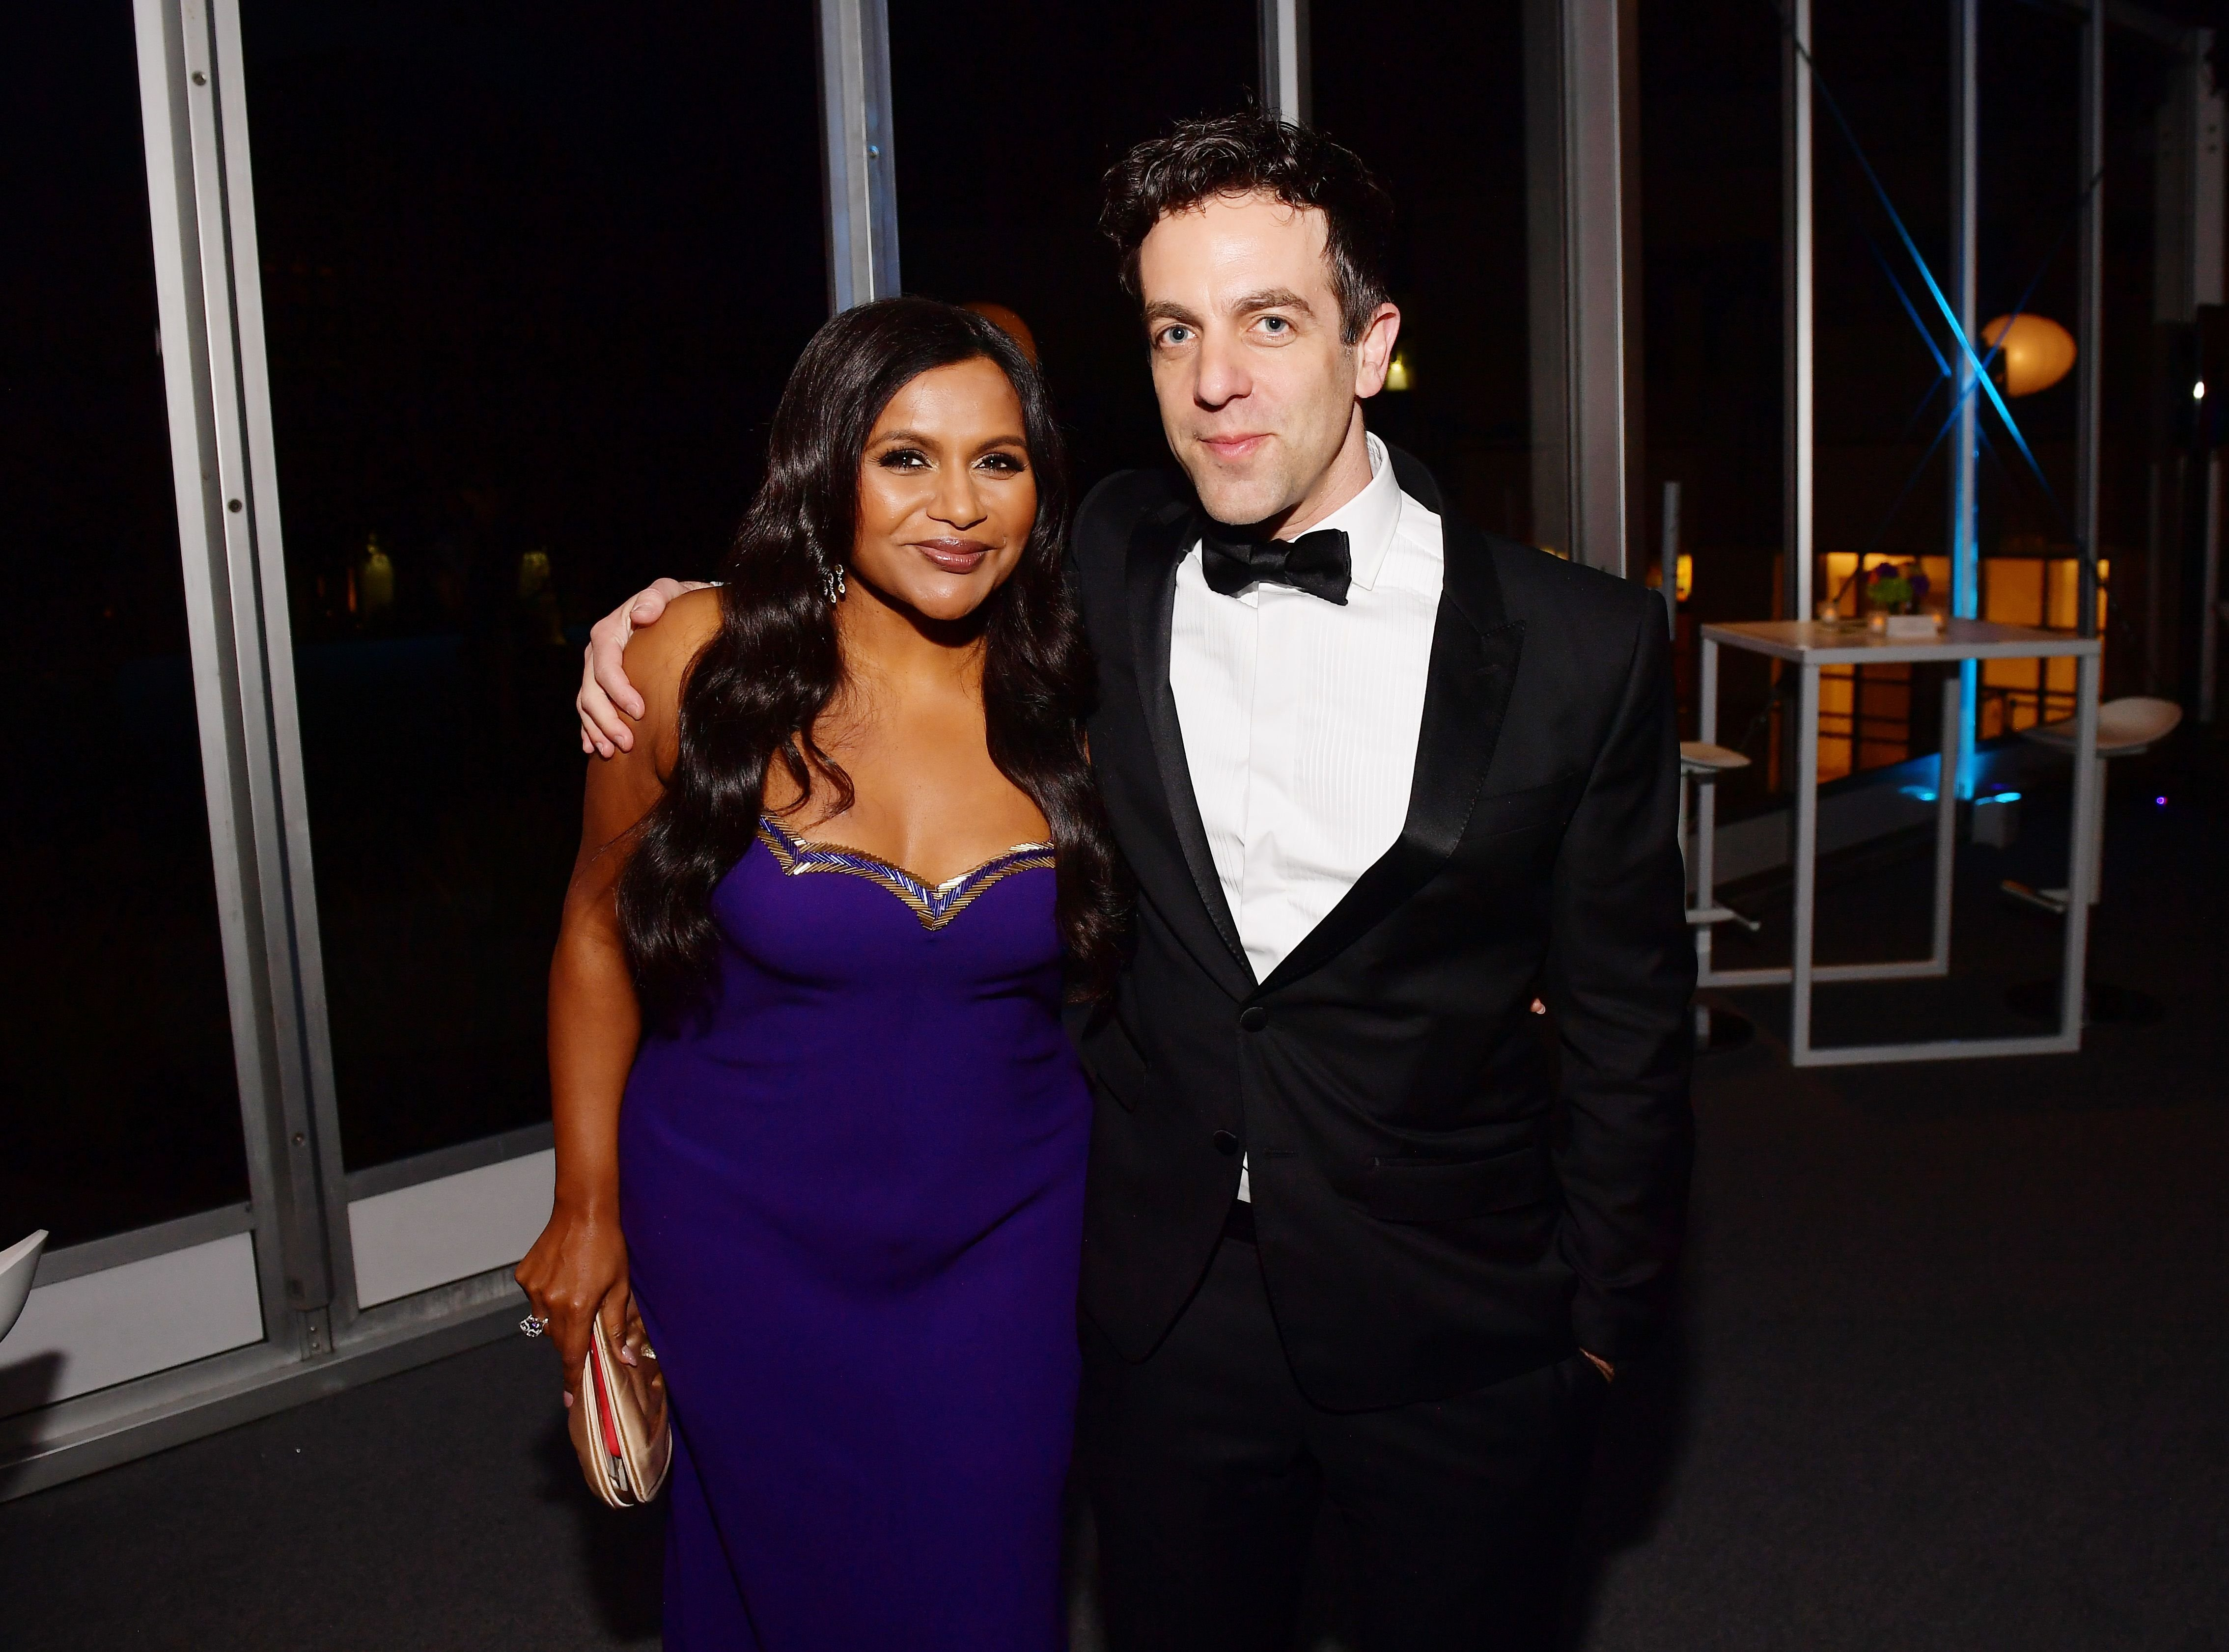 Mindy Kaling and B. J. Novak at the 2020 Vanity Fair Oscar Party in Hollywood | Source: Getty Images